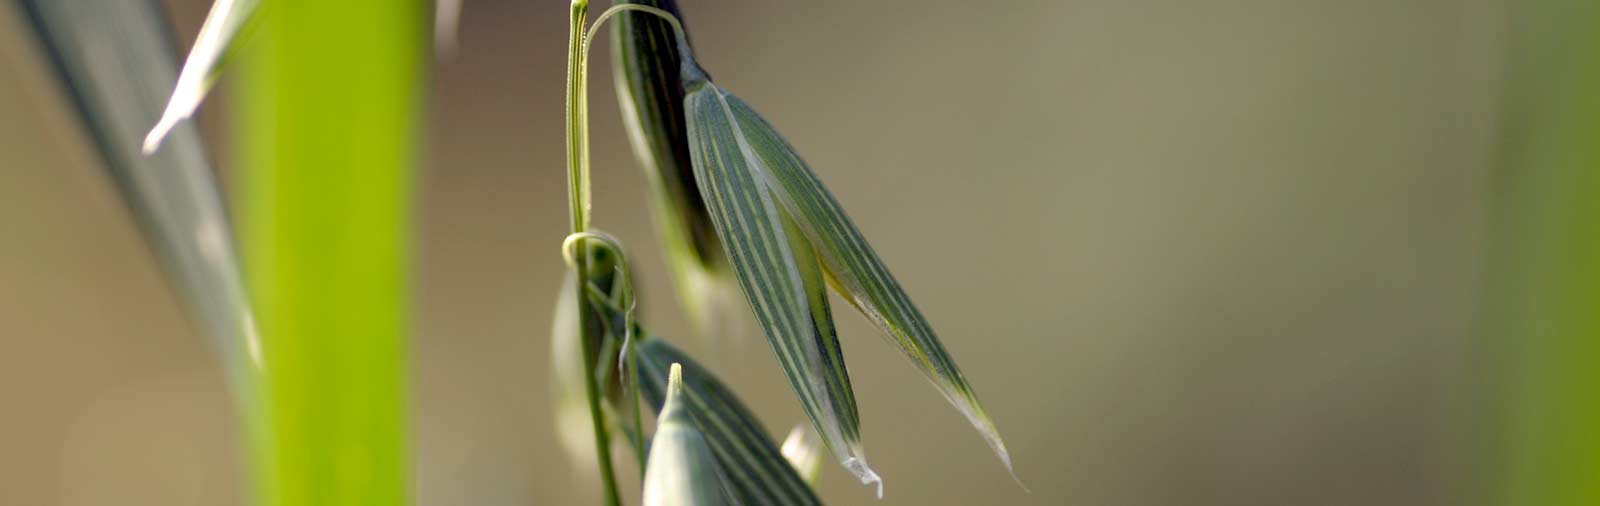 Common Oat - Avena sativa L.